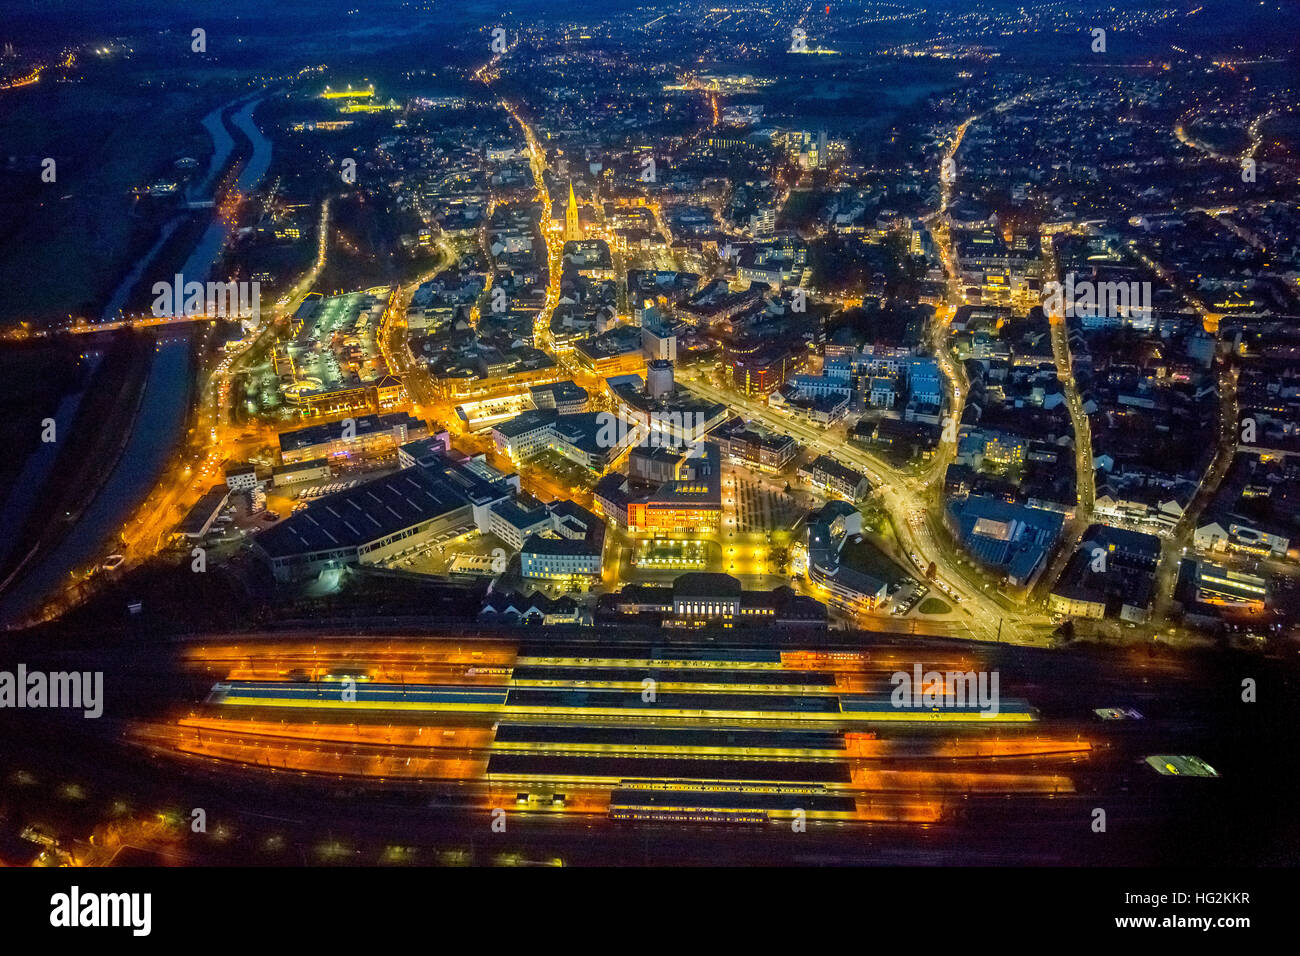 Aerial view, night snapshot overview of Hamm with train and tracks, Hamm, nightlight, Ruhr aeria, north rhine-westphalia,Germany - Stock Image